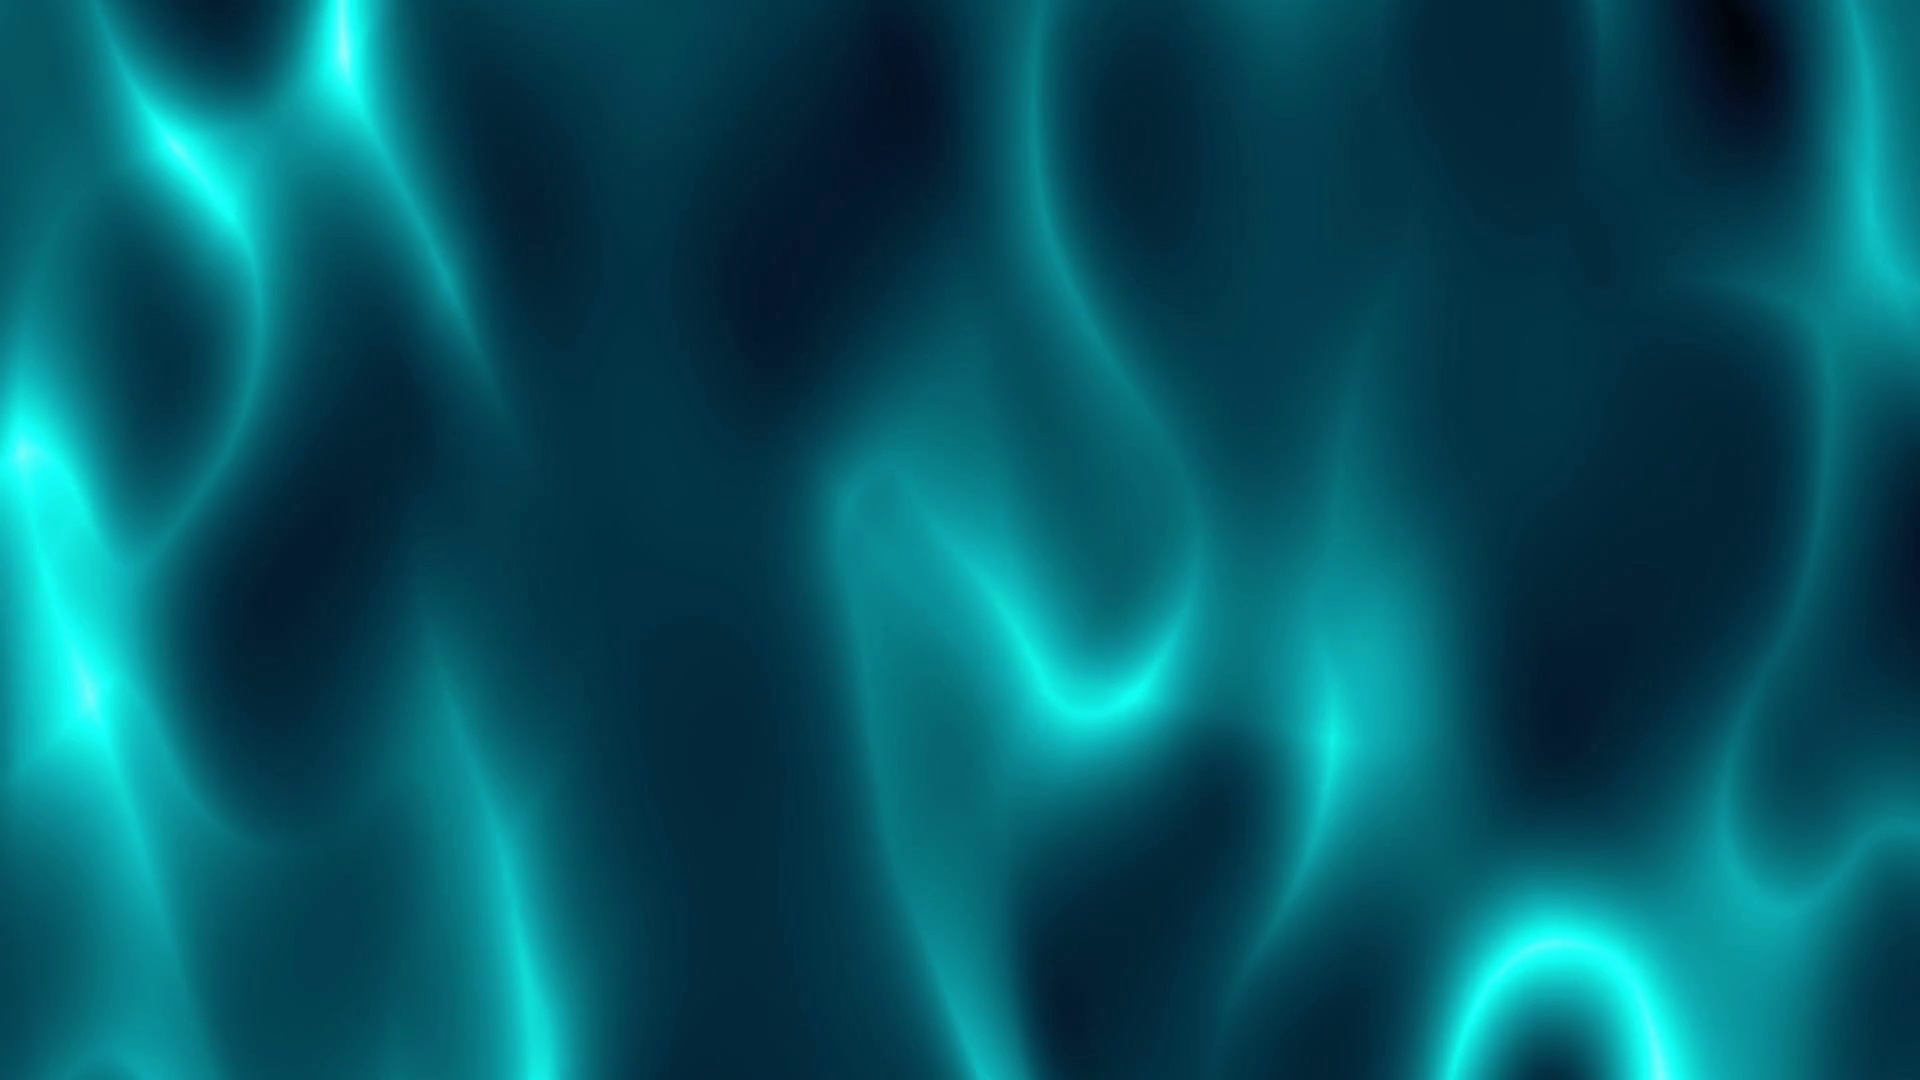 abstract neon blue background fractal lines loop motion background